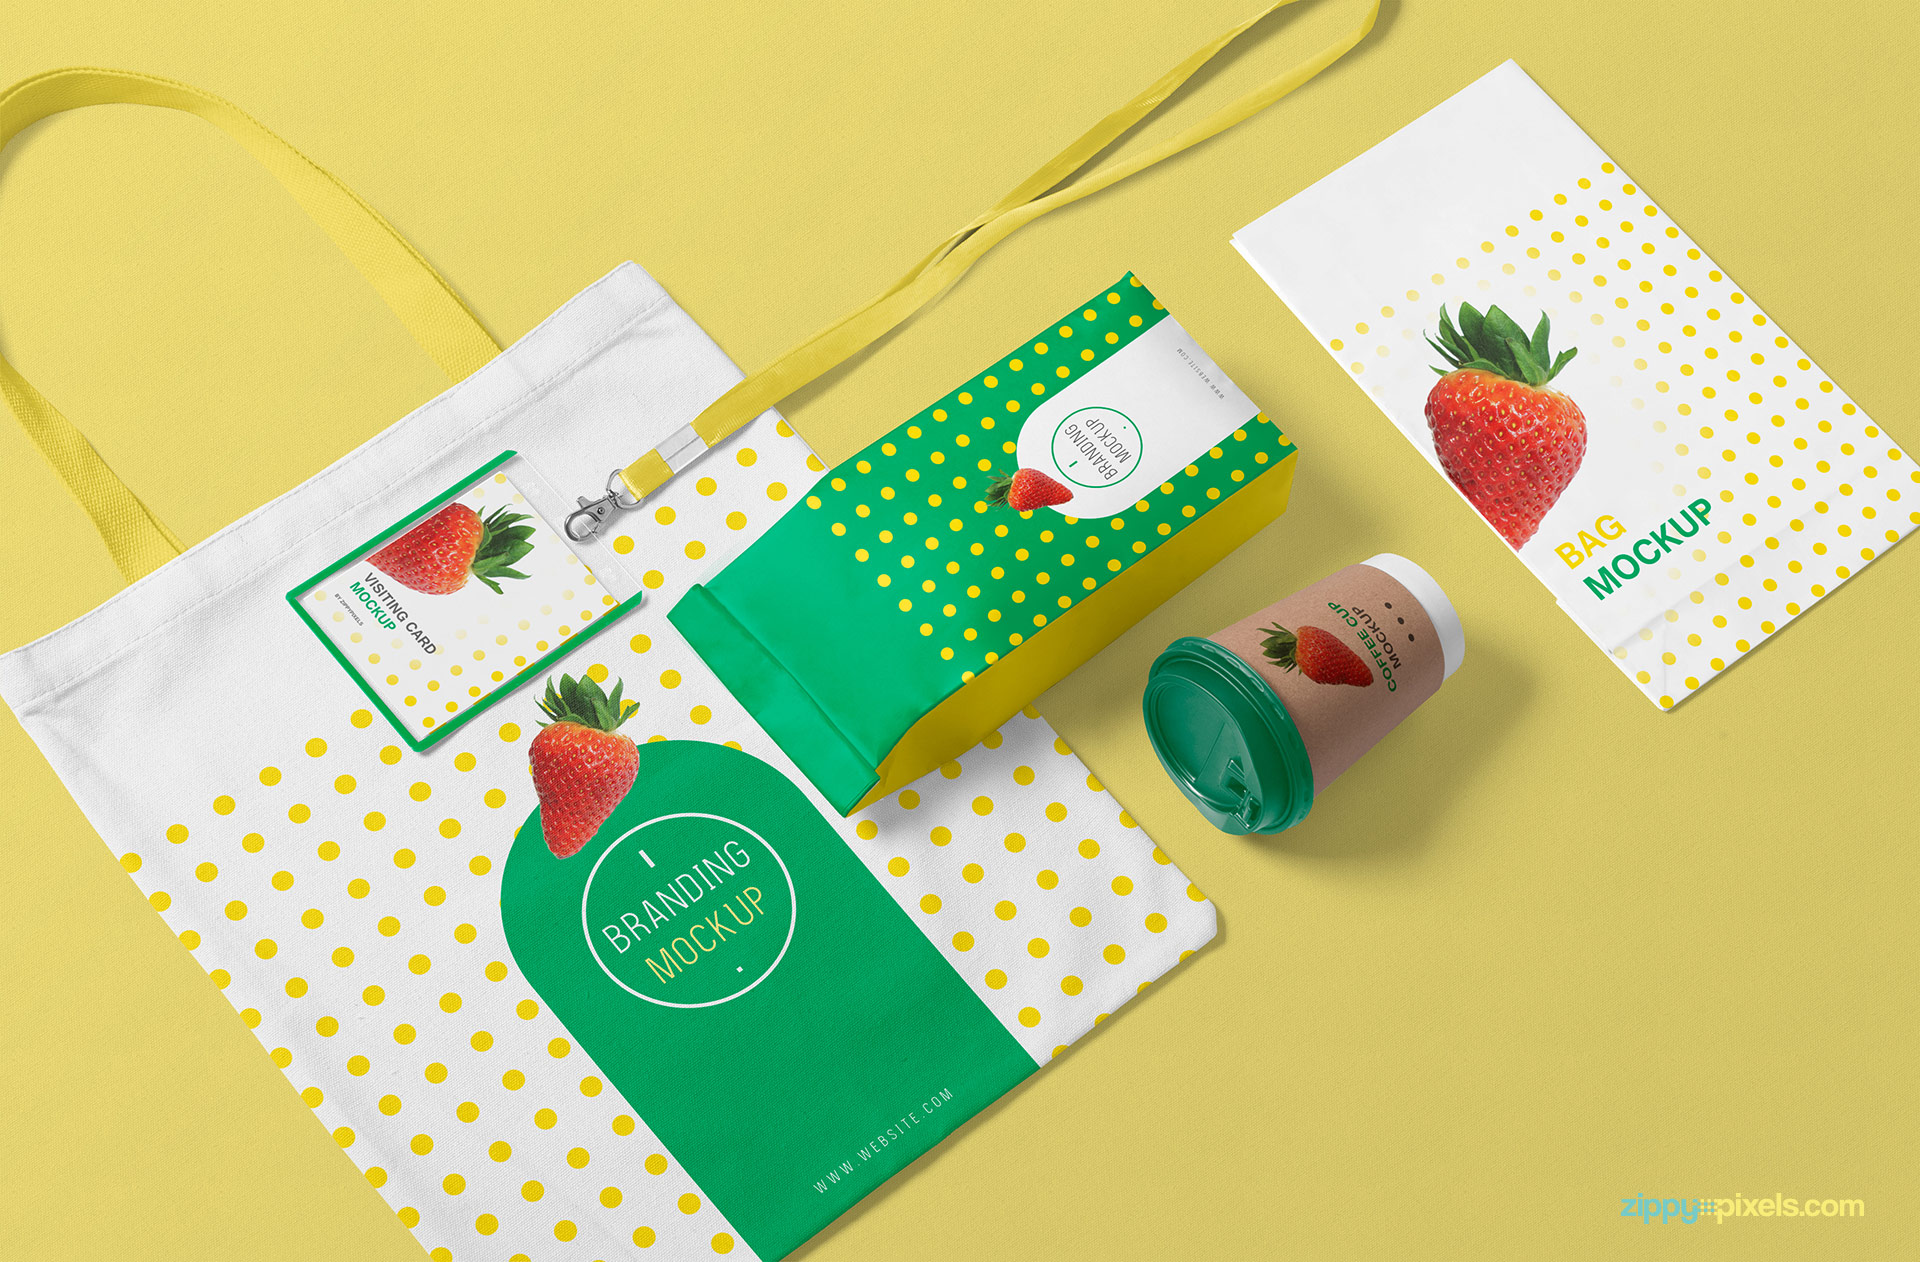 The background of the packaging pouch can be replaced with any color or design.